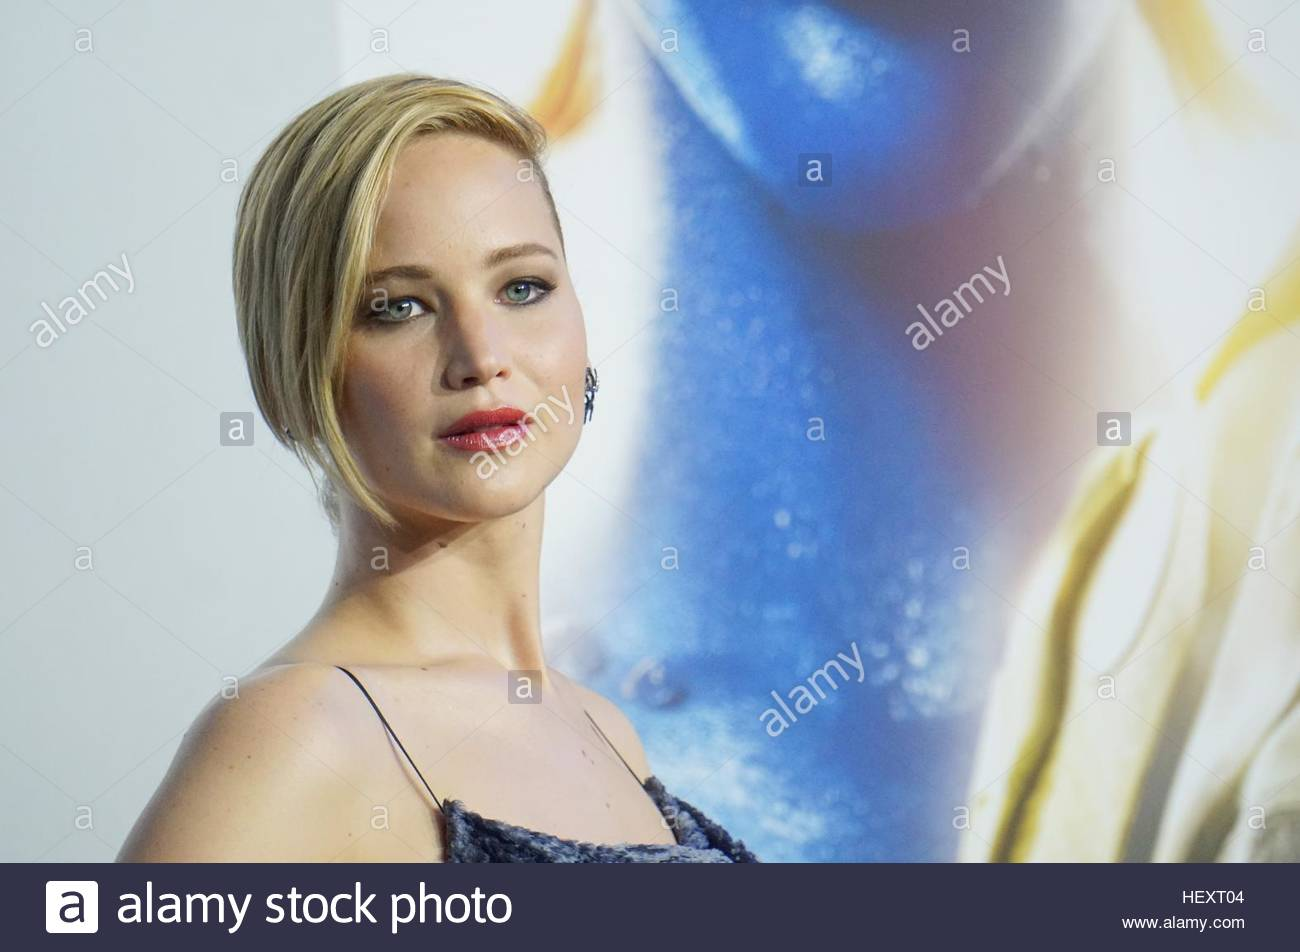 Jennifer Lawrence attends the 'The Hunger Games: Mockingjay Part 1' party at the 67th Annual Cannes Film - Stock Image